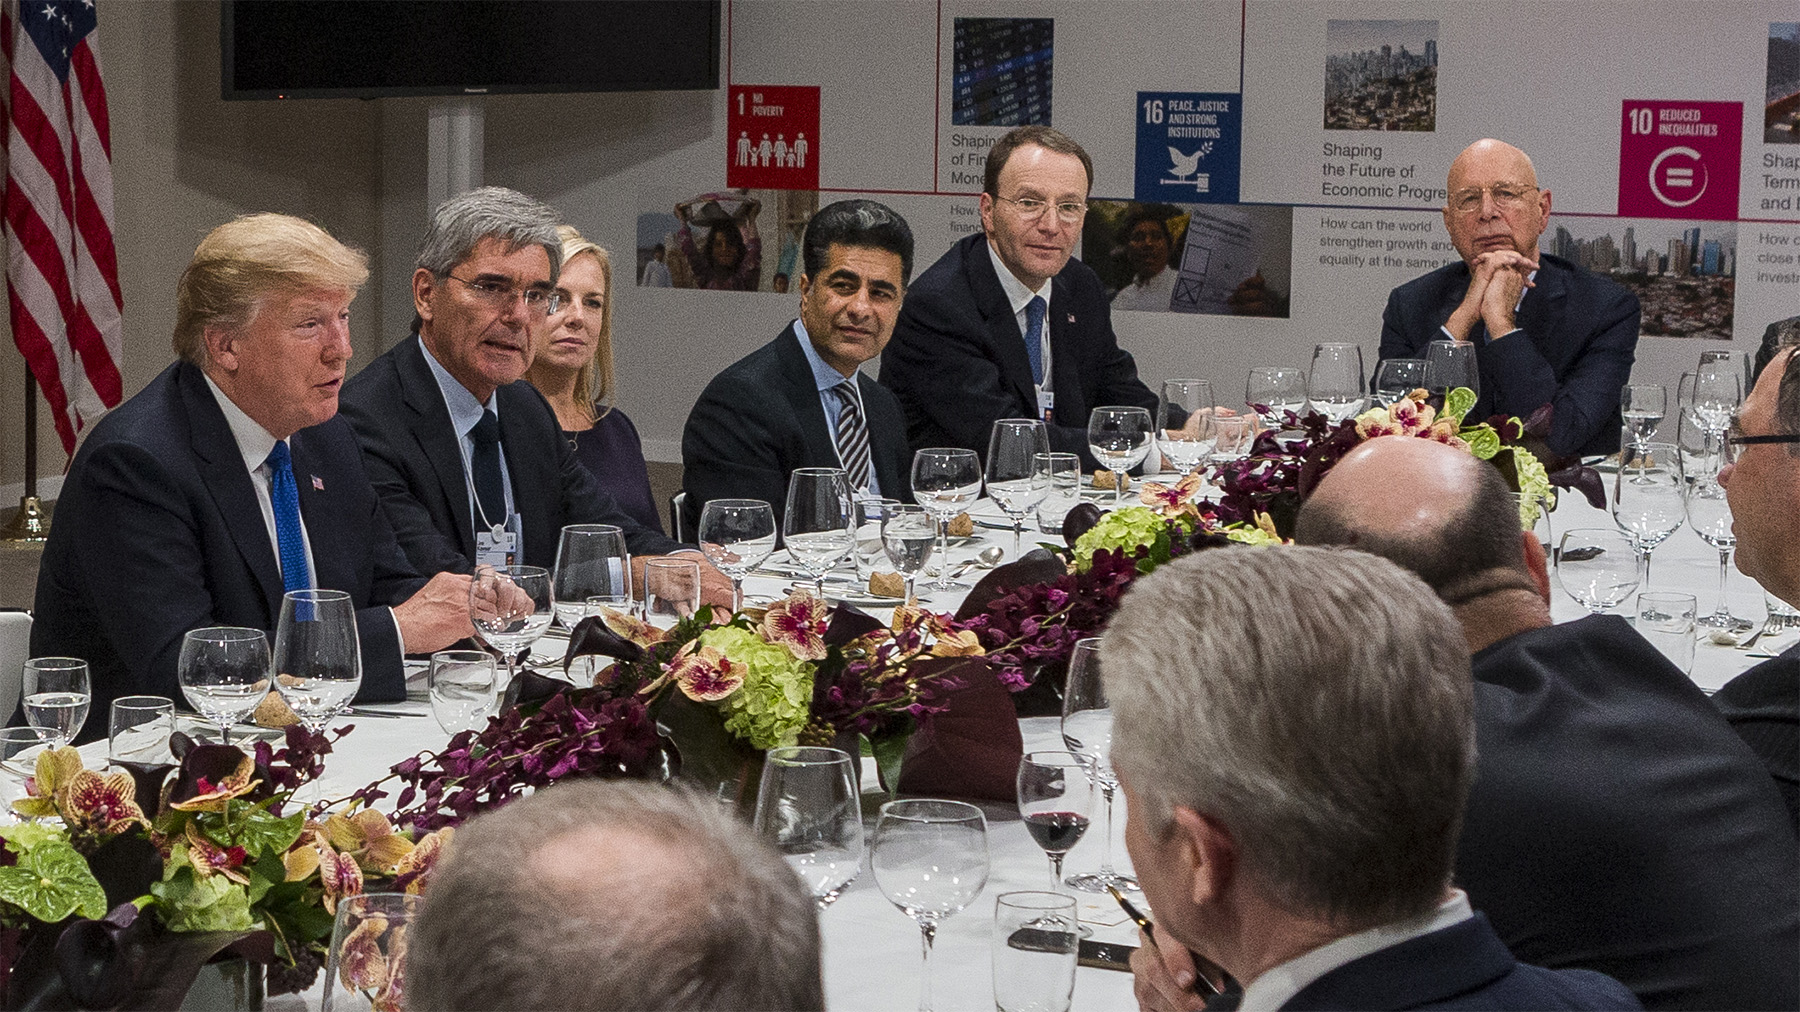 Private Business Leaders' Dinner hosted by President Trump at the Annual Meeting 2018 of the World Economic Forum in Davos, January 25, 2018.